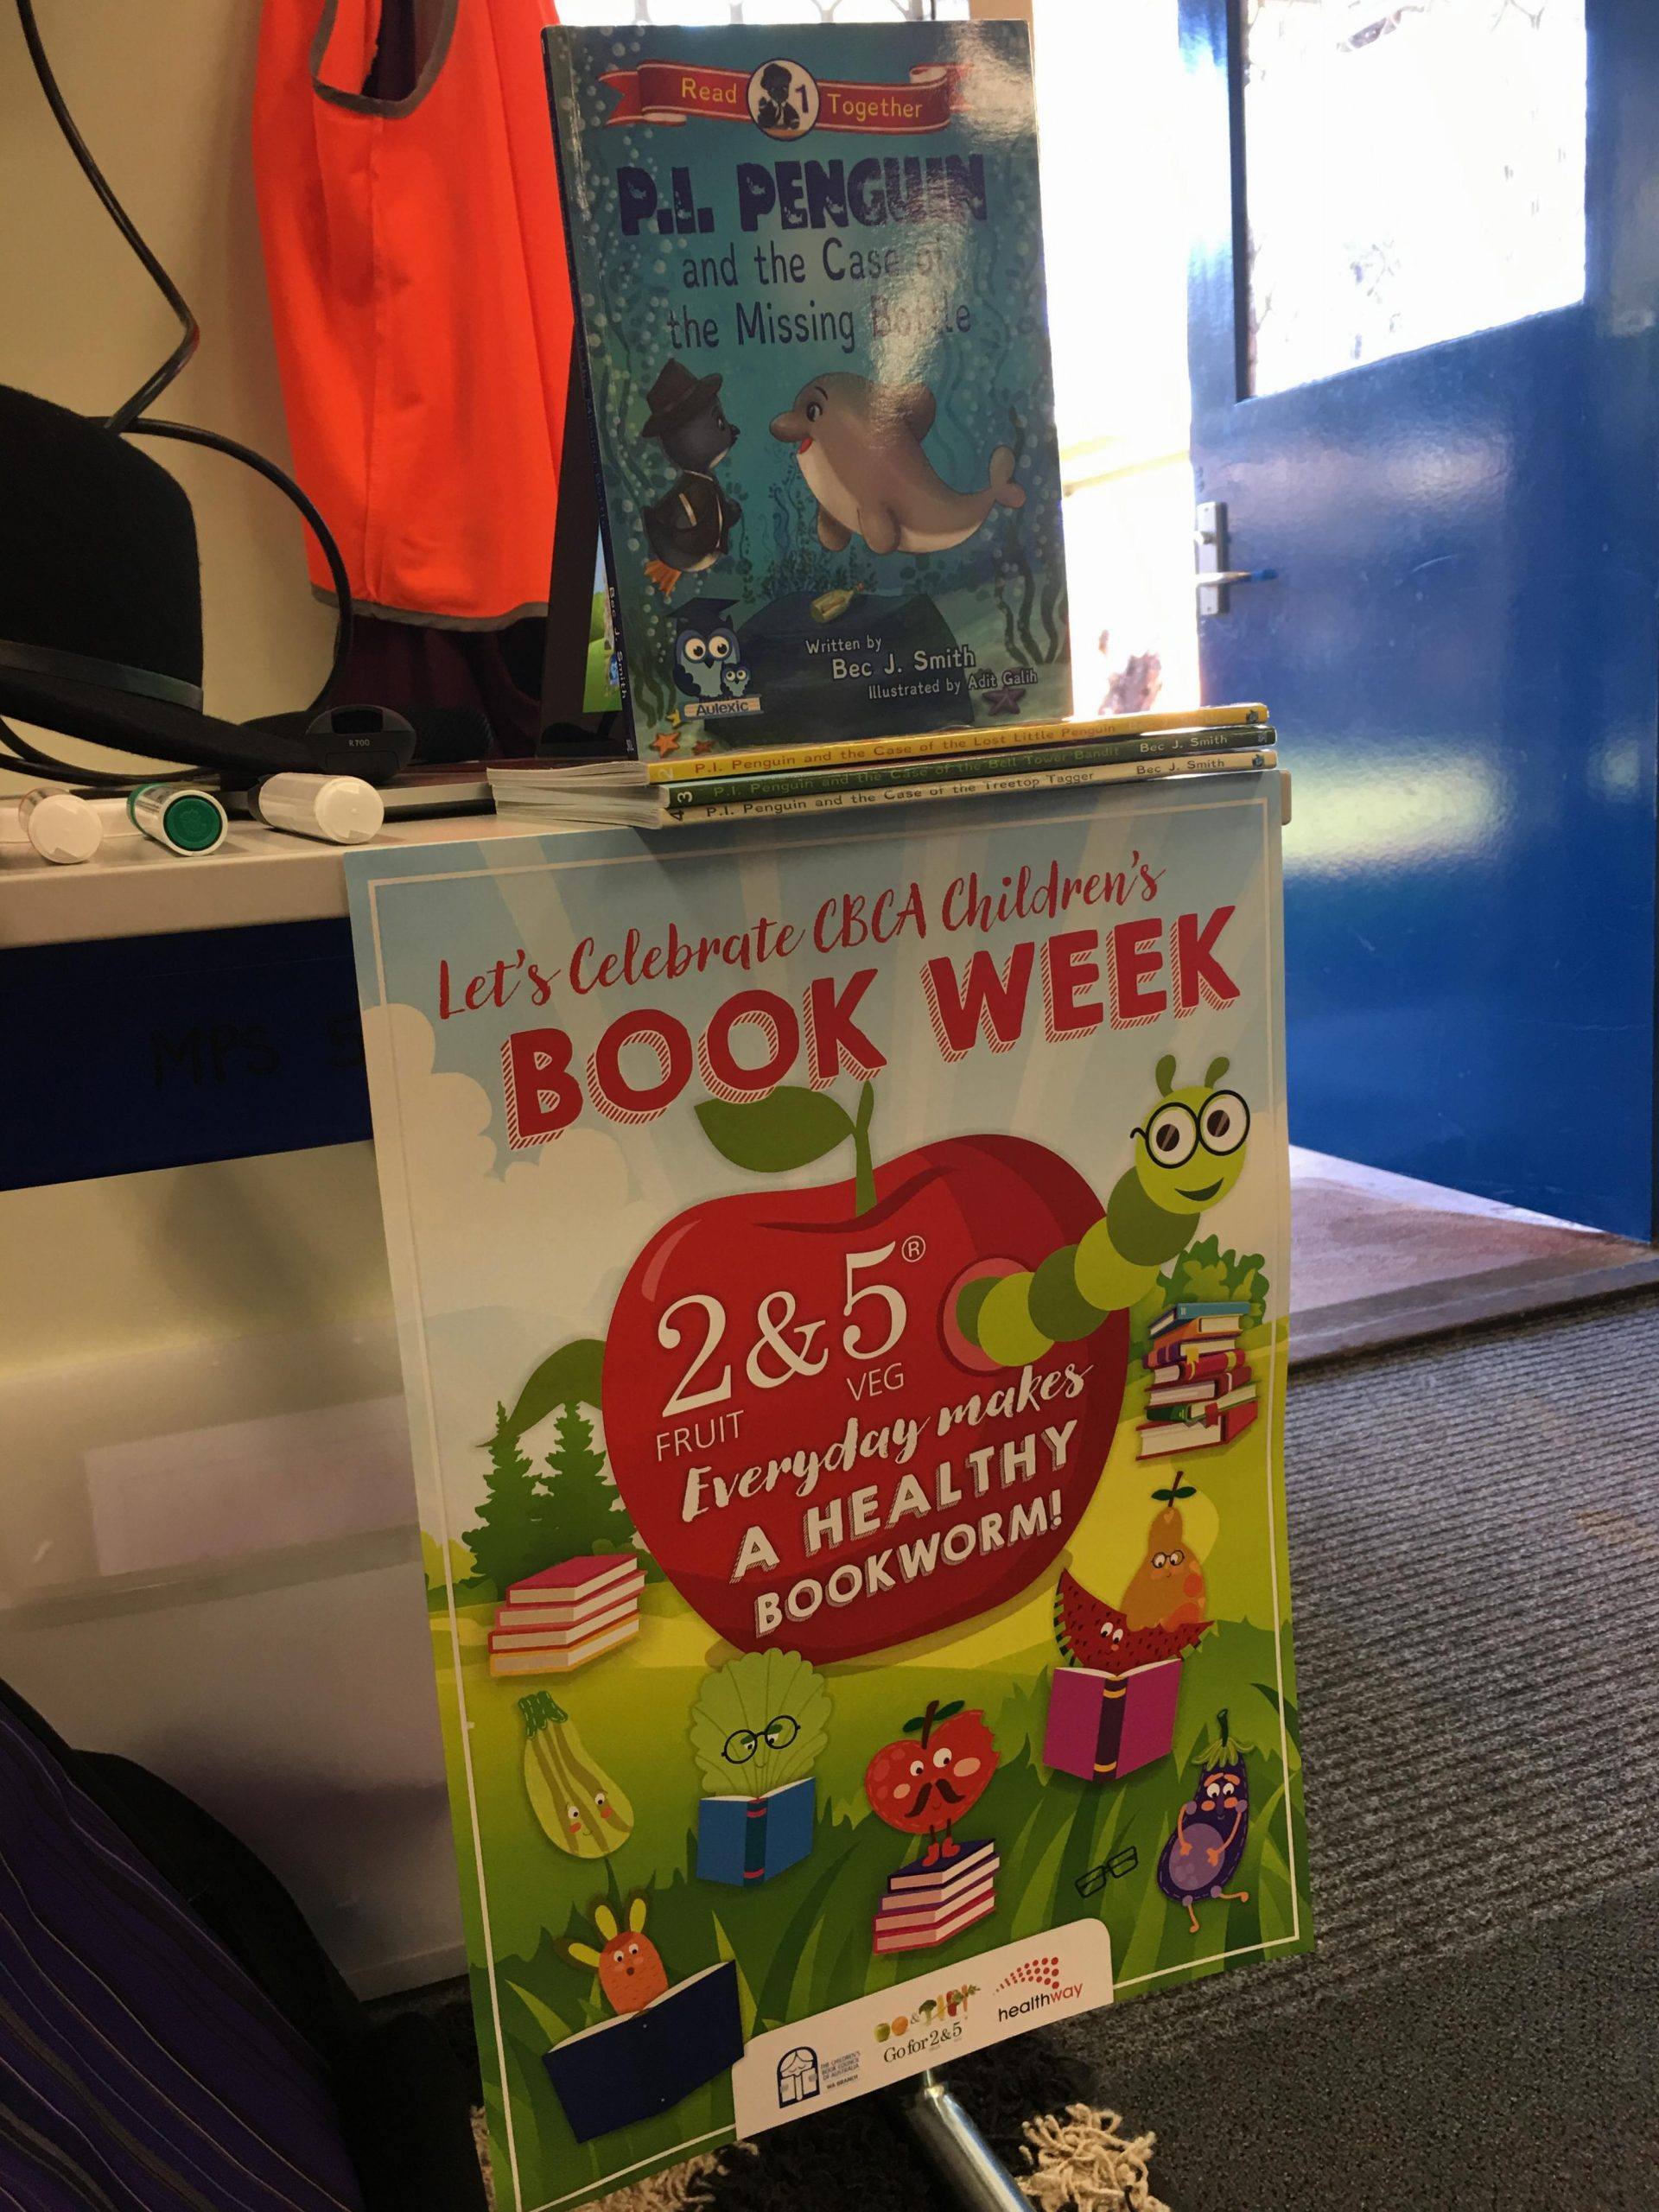 P.I. Penguin books above a Children's Book Week 2017 poster.